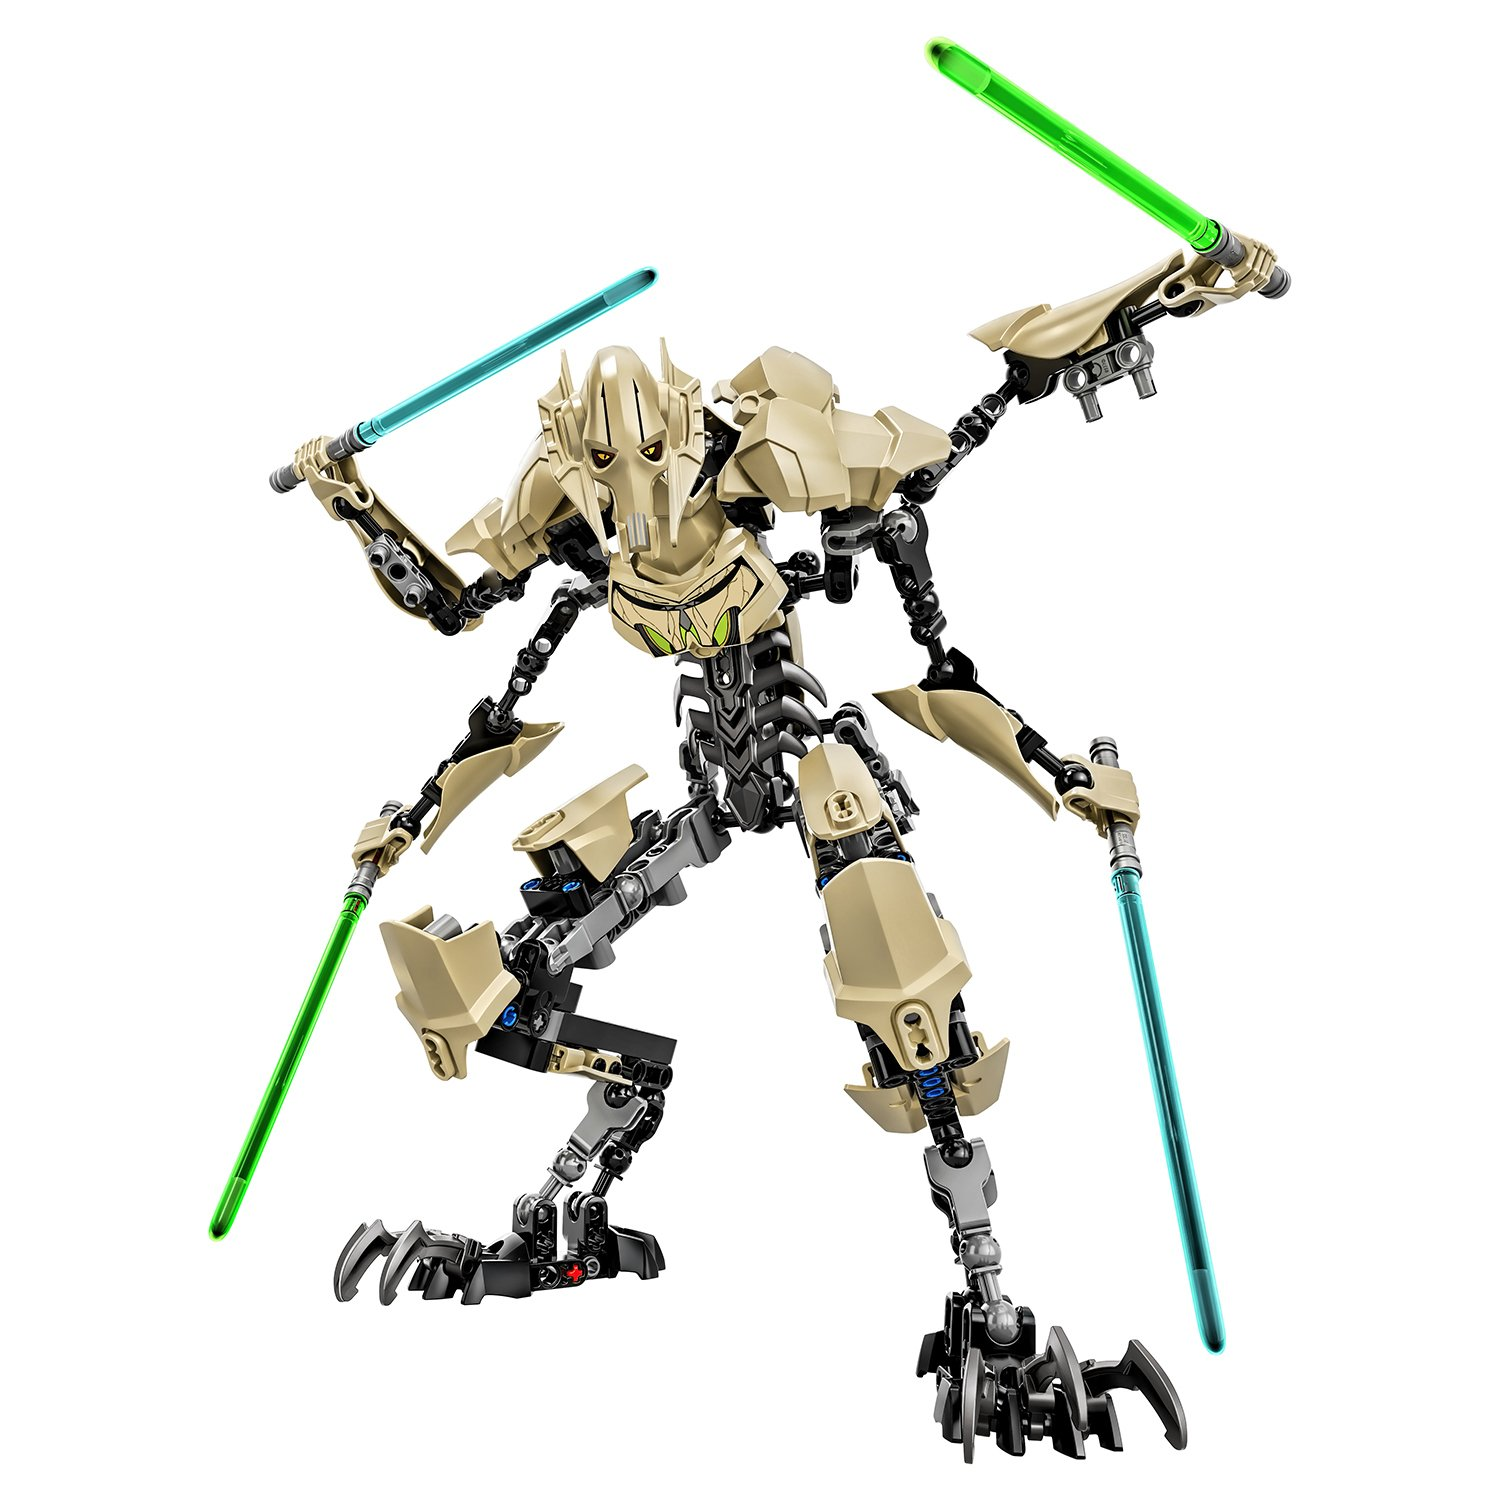 75112 - Constraction  General Grievous™